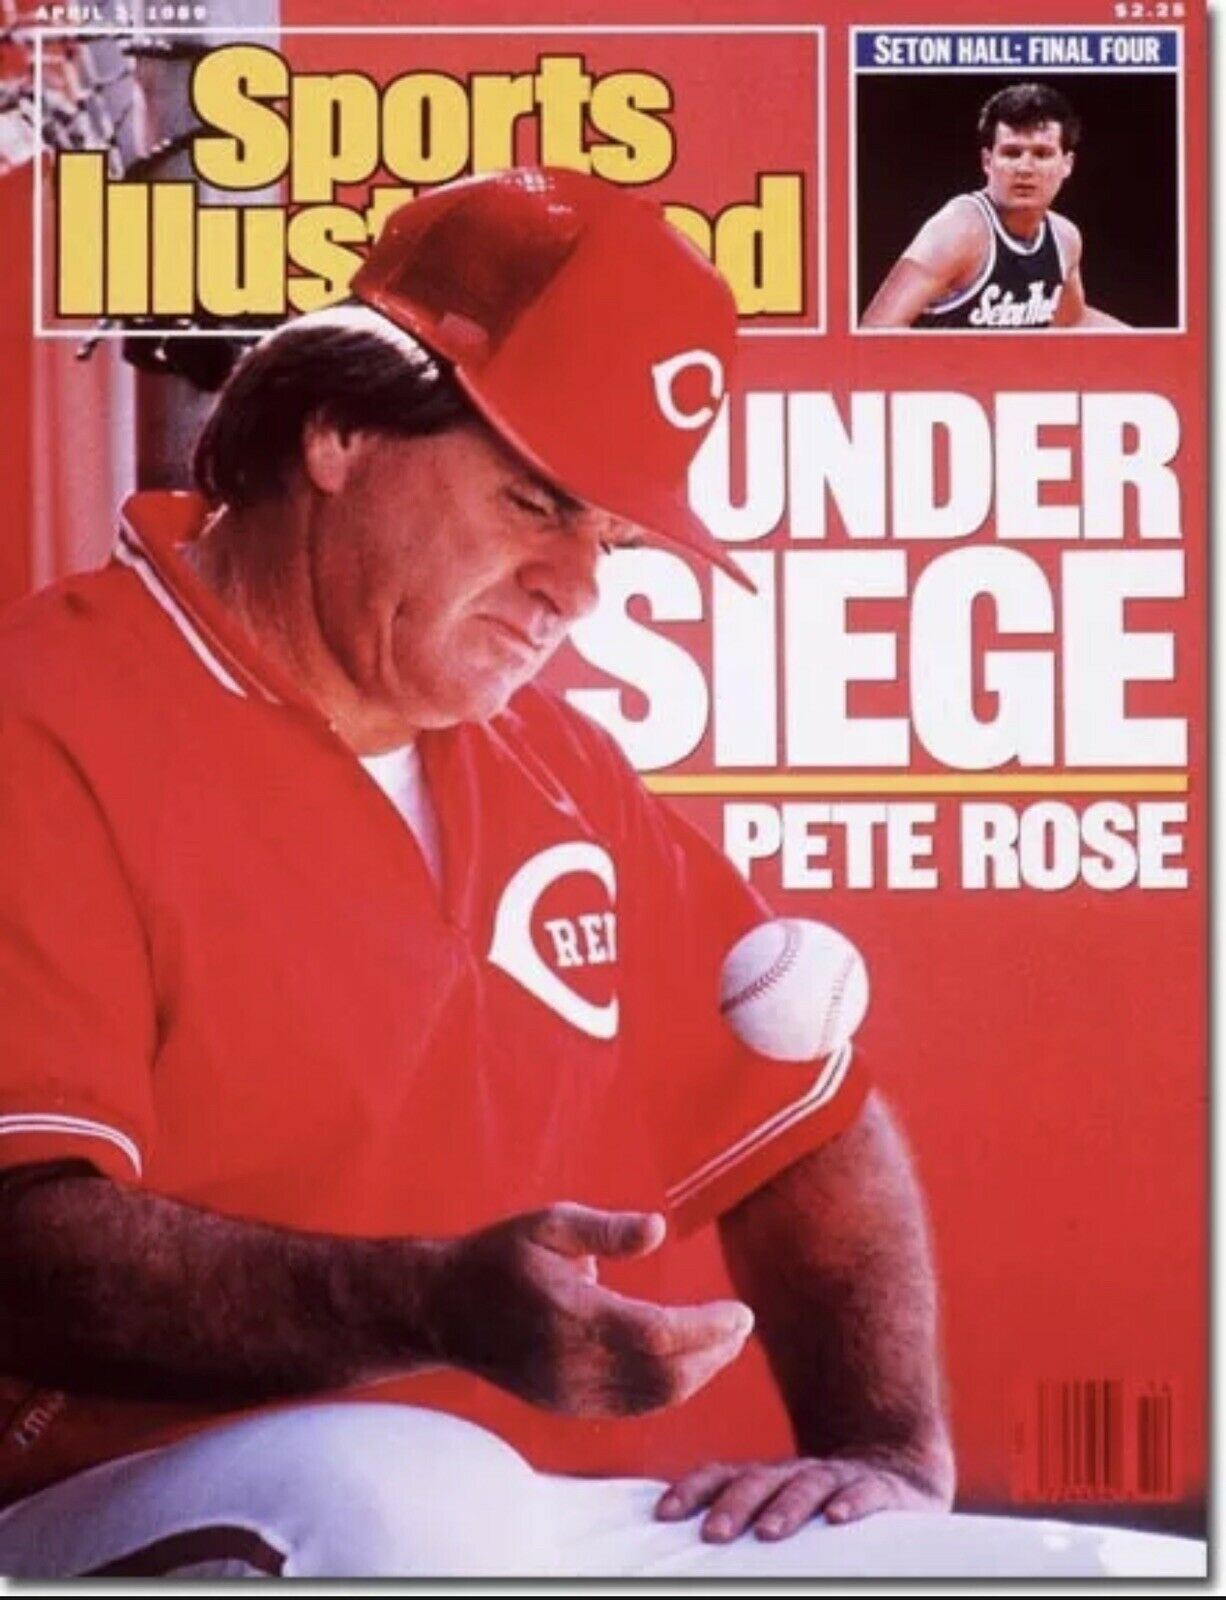 Pete Rose on Sports Illustrated cover (SICOVERS.COM)